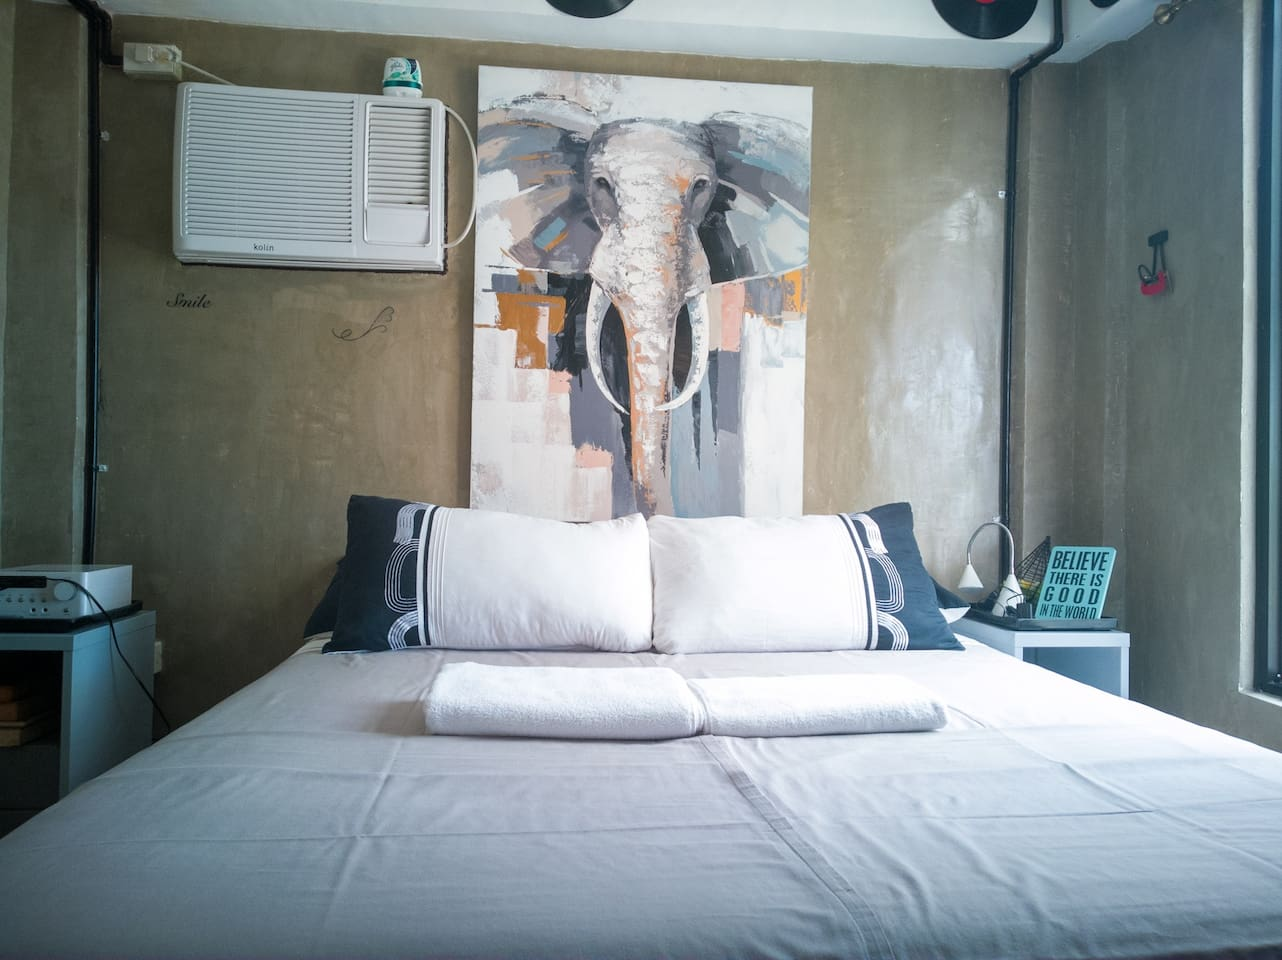 One bedroom apartment with double bed with a TV at the foot of the bed for your movie marathon or if you just need to chill.